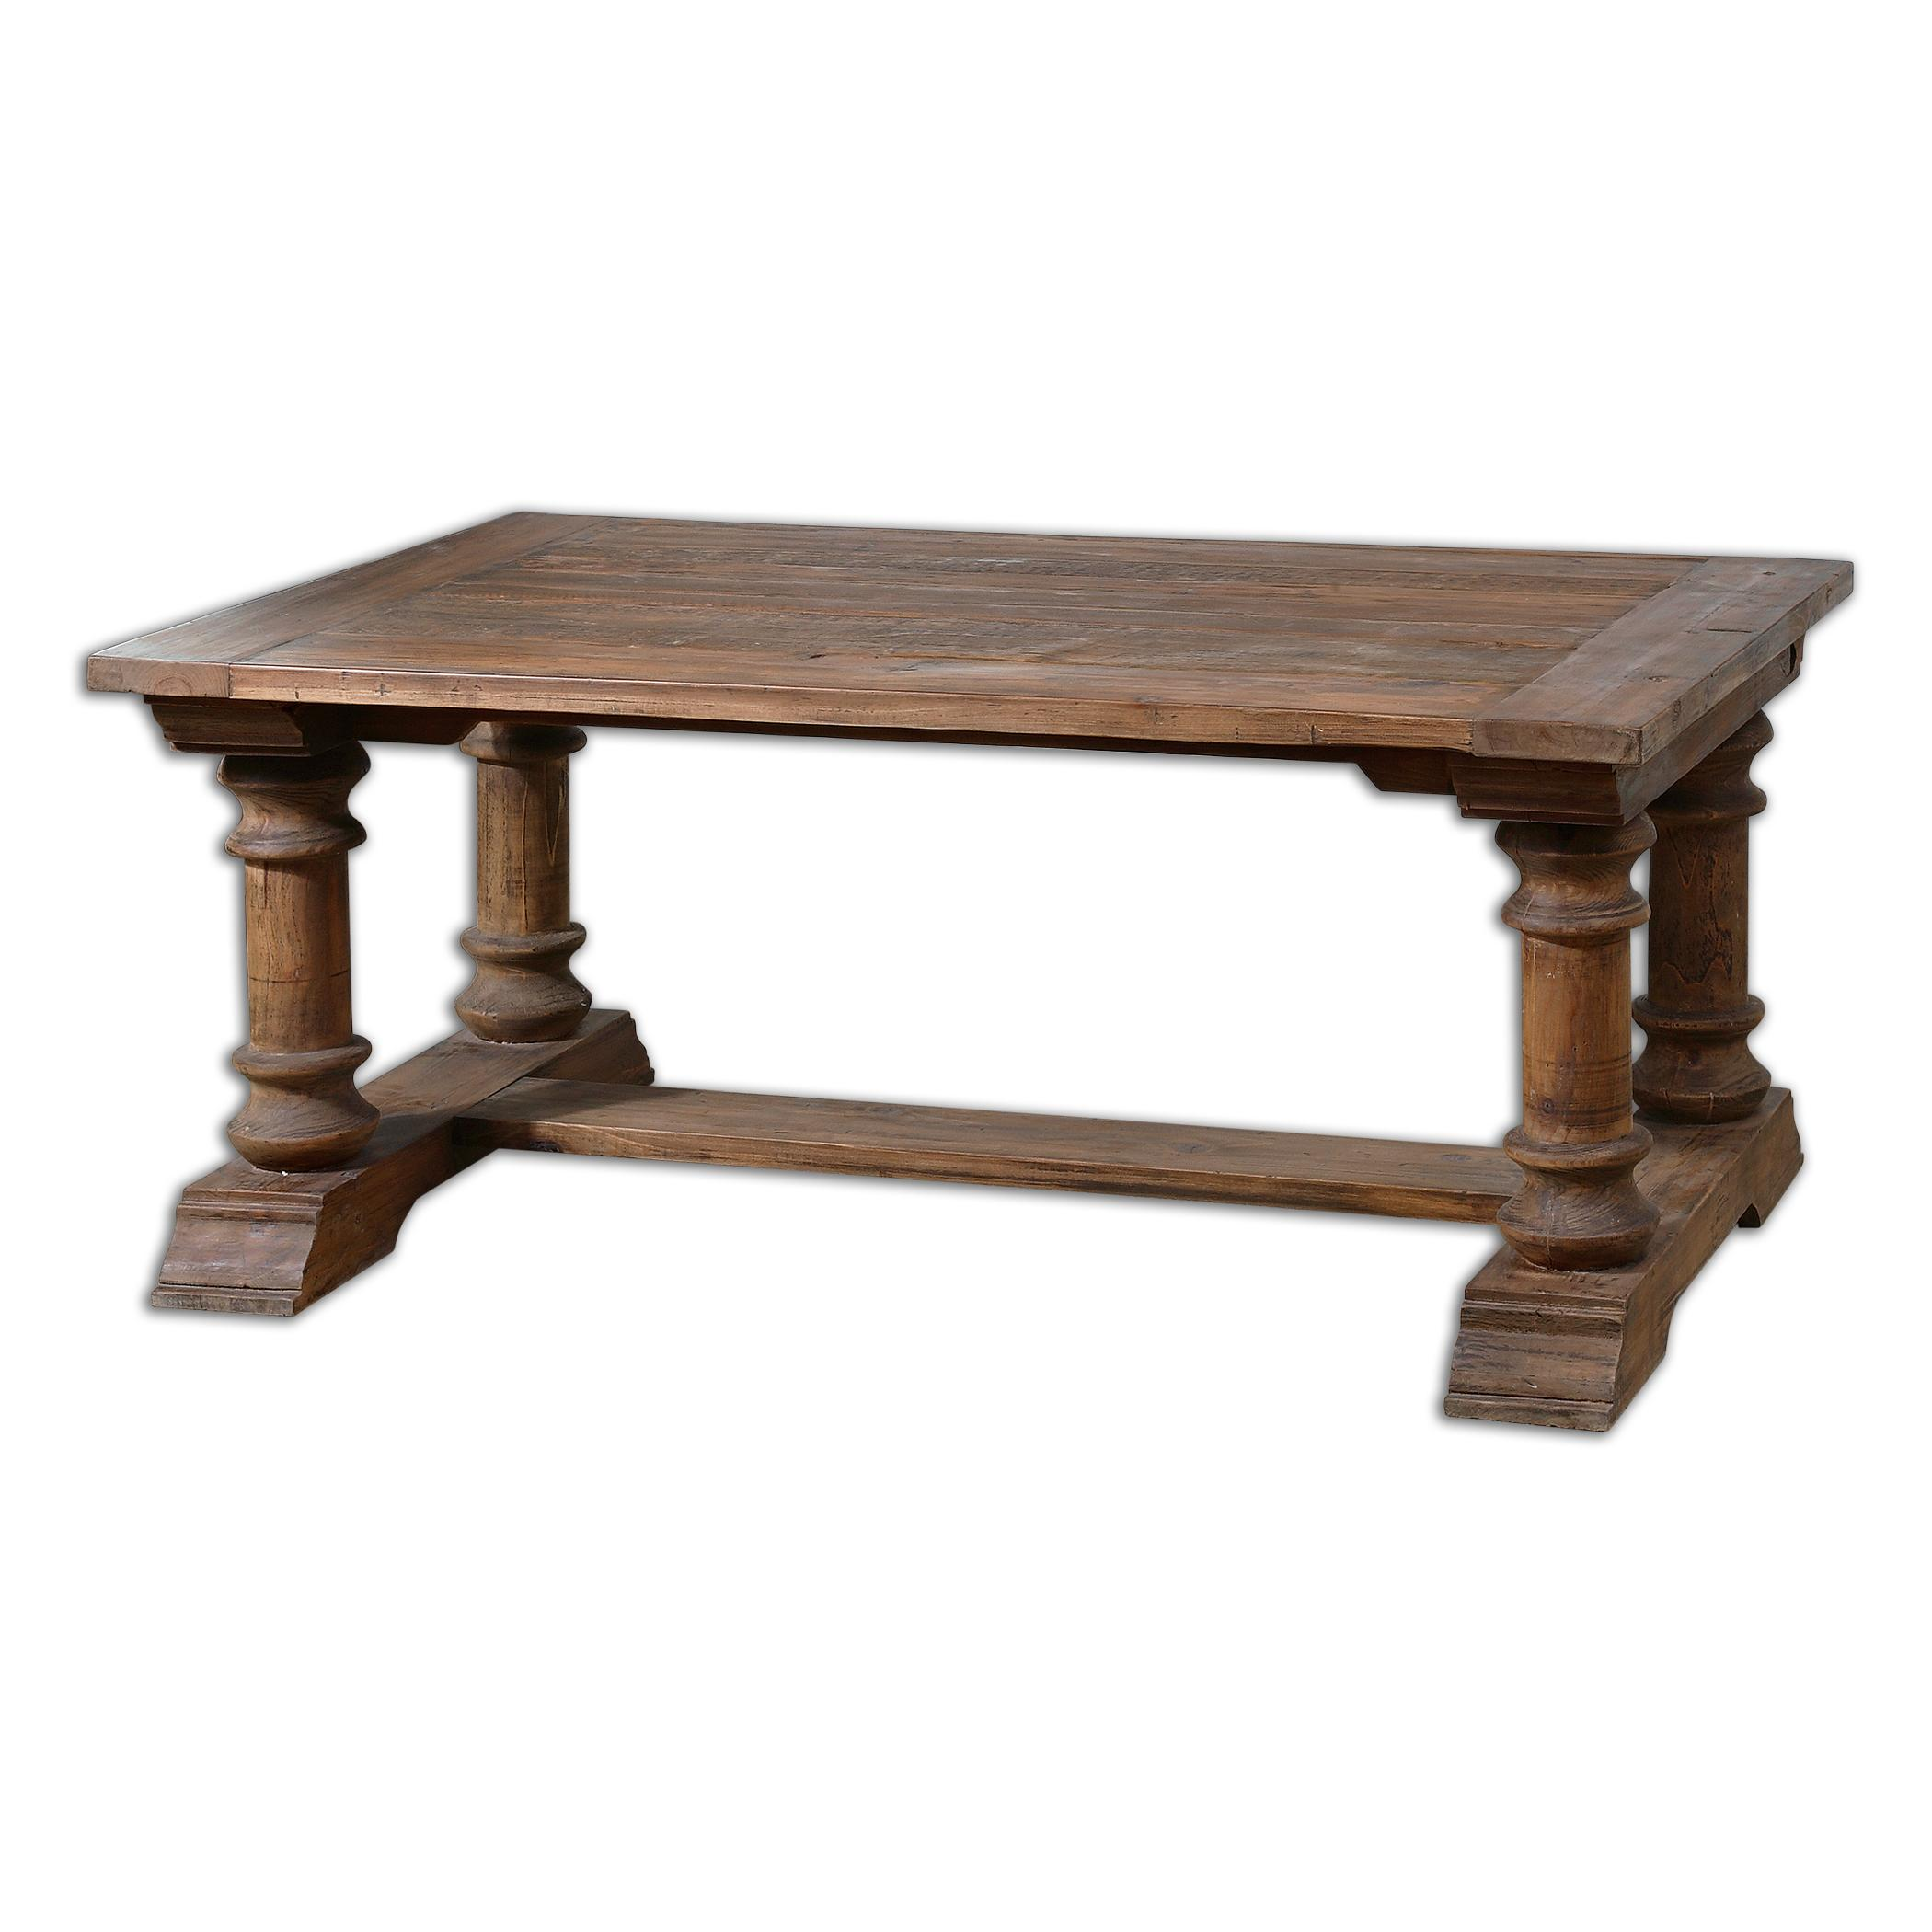 Uttermost Accent Furniture Saturia Wooden Coffee Table - Item Number: 24342